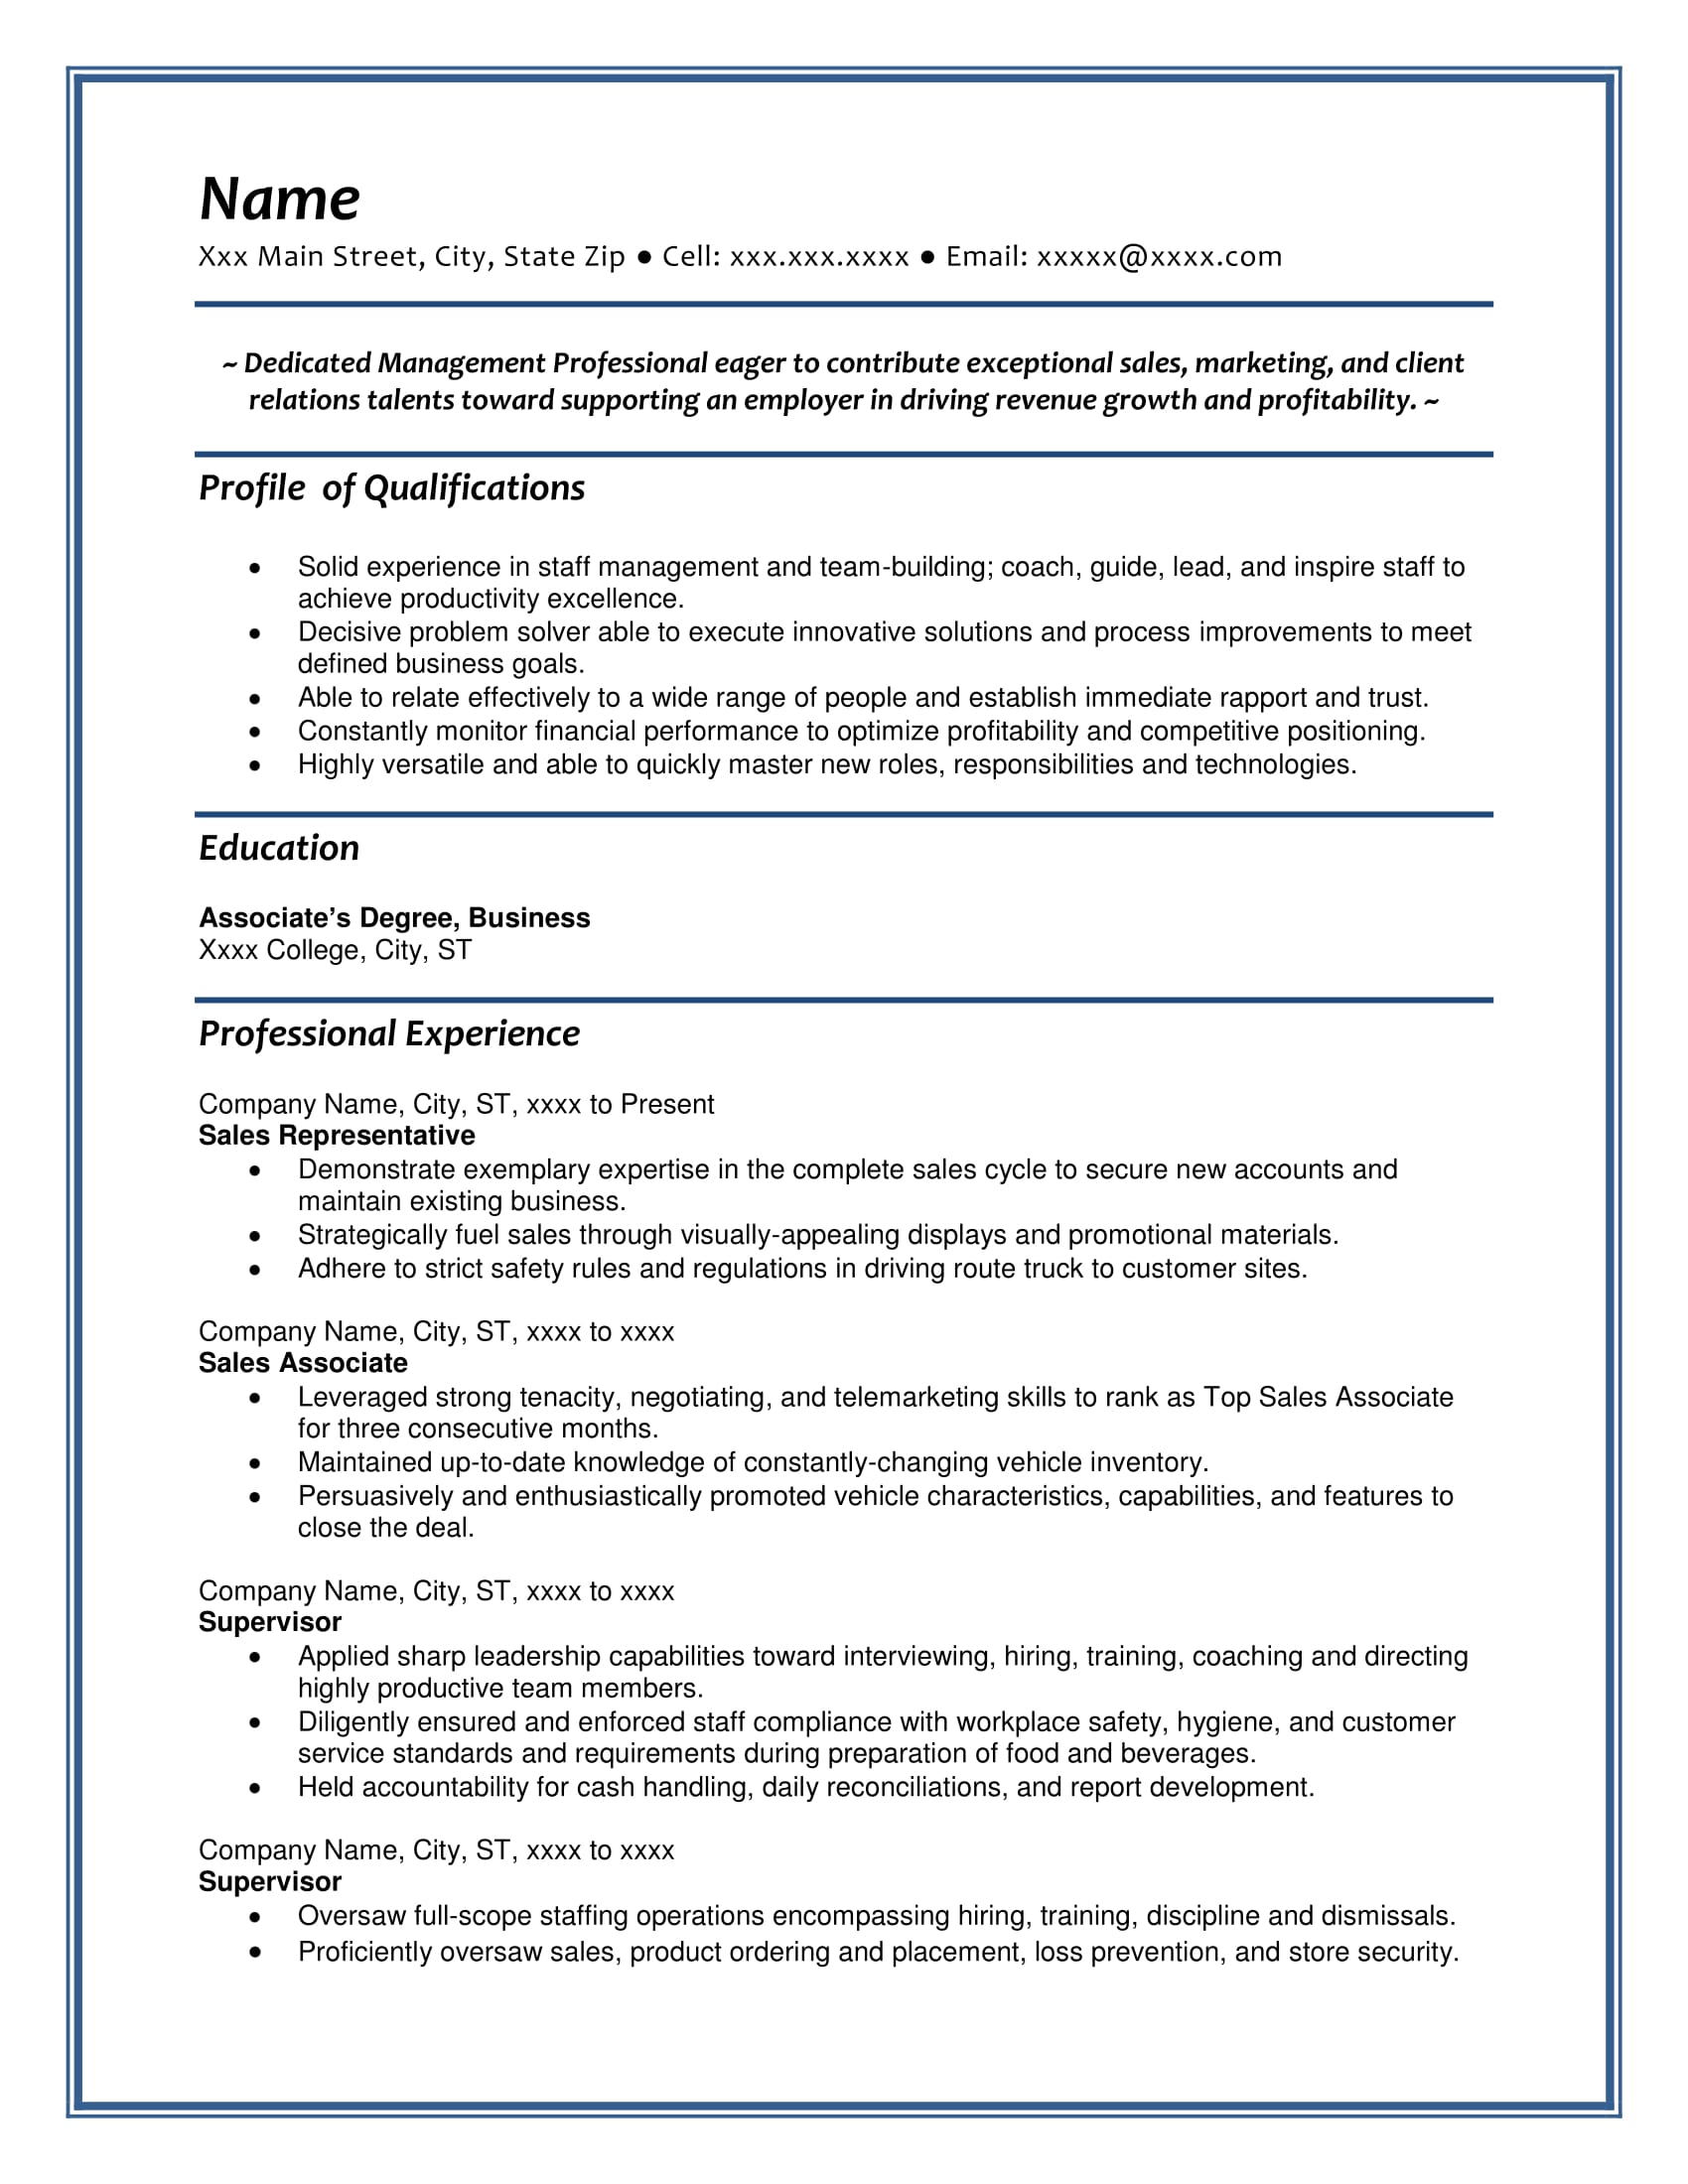 resume writing companies in the best services of service automated logistical specialist Resume Best Resume Service 2020